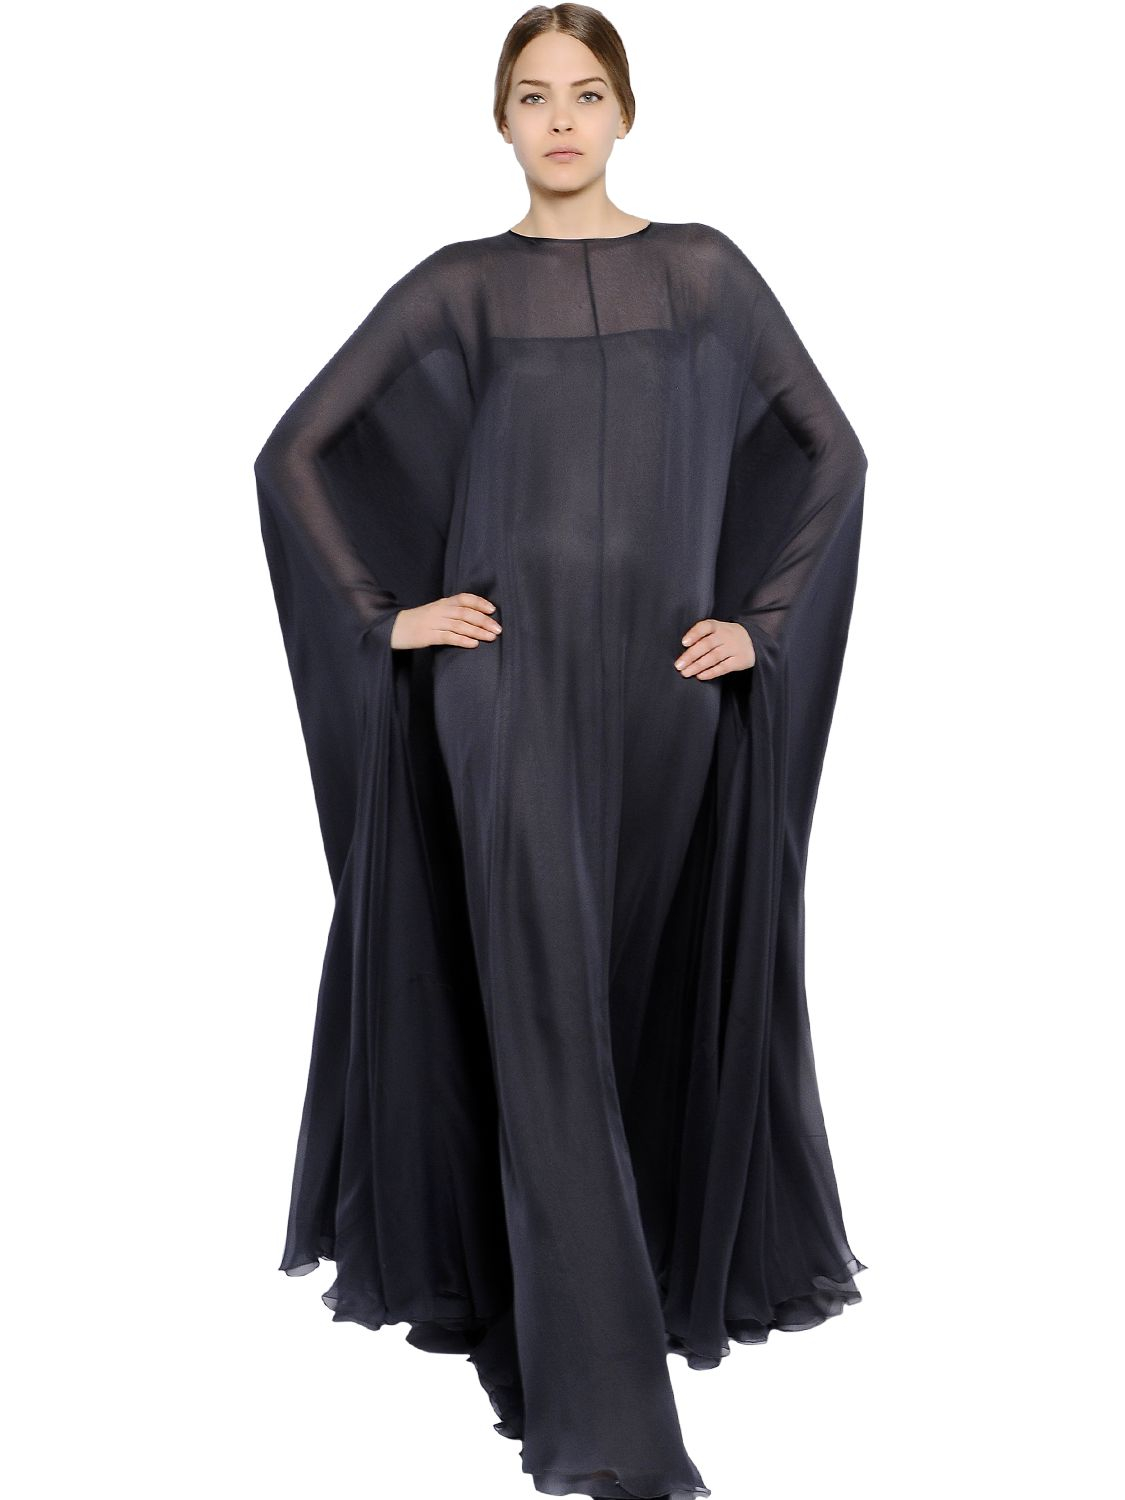 Lyst Valentino Silk Chiffon Cape Dress In Gray